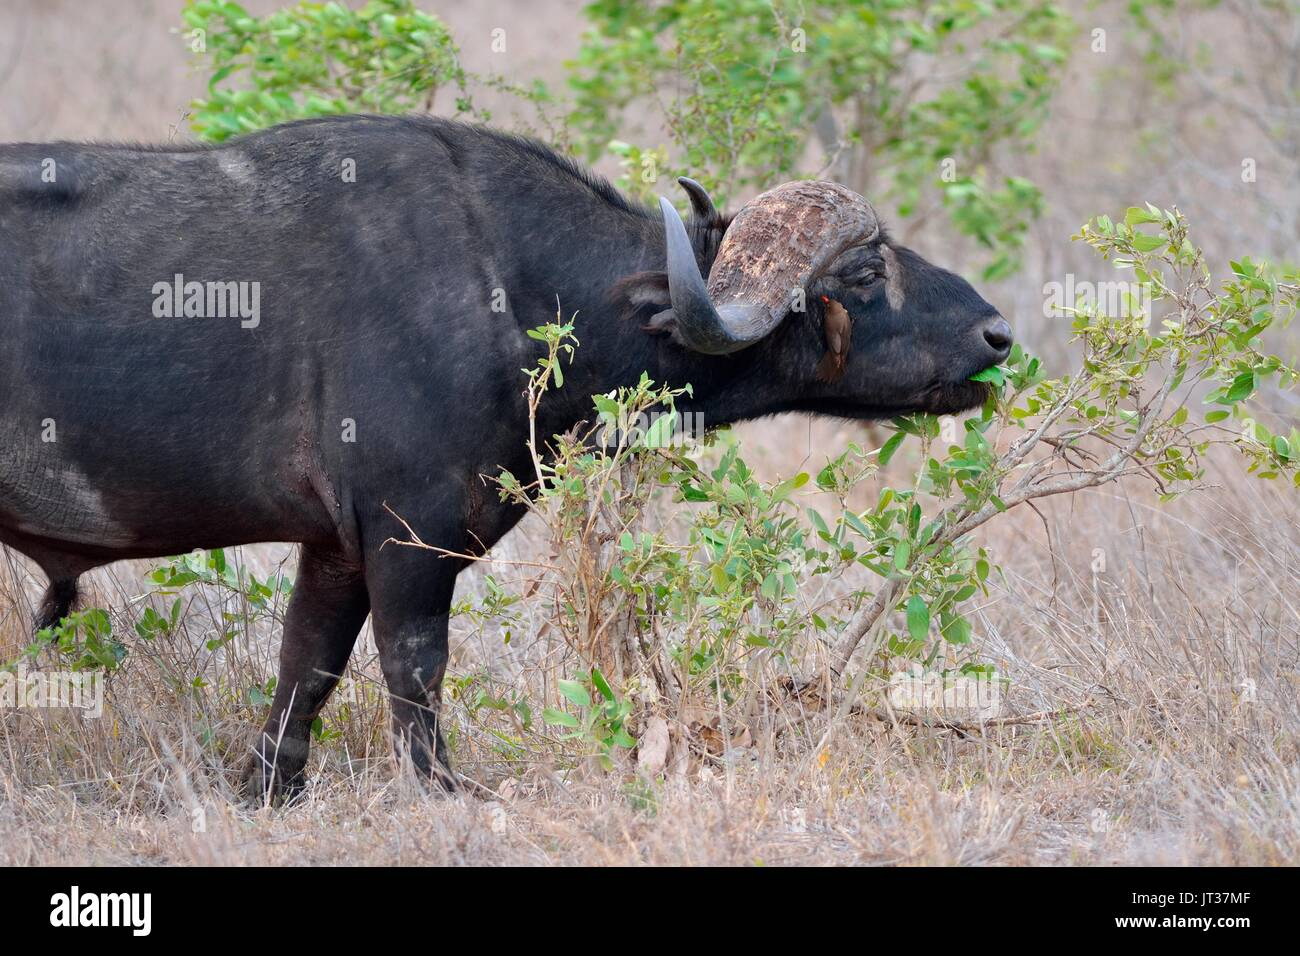 African buffalo (Syncerus caffer), bull feeding on leaves, Red-billed oxpecker on buffalo's face, Kruger National Park, South Africa, Africa - Stock Image